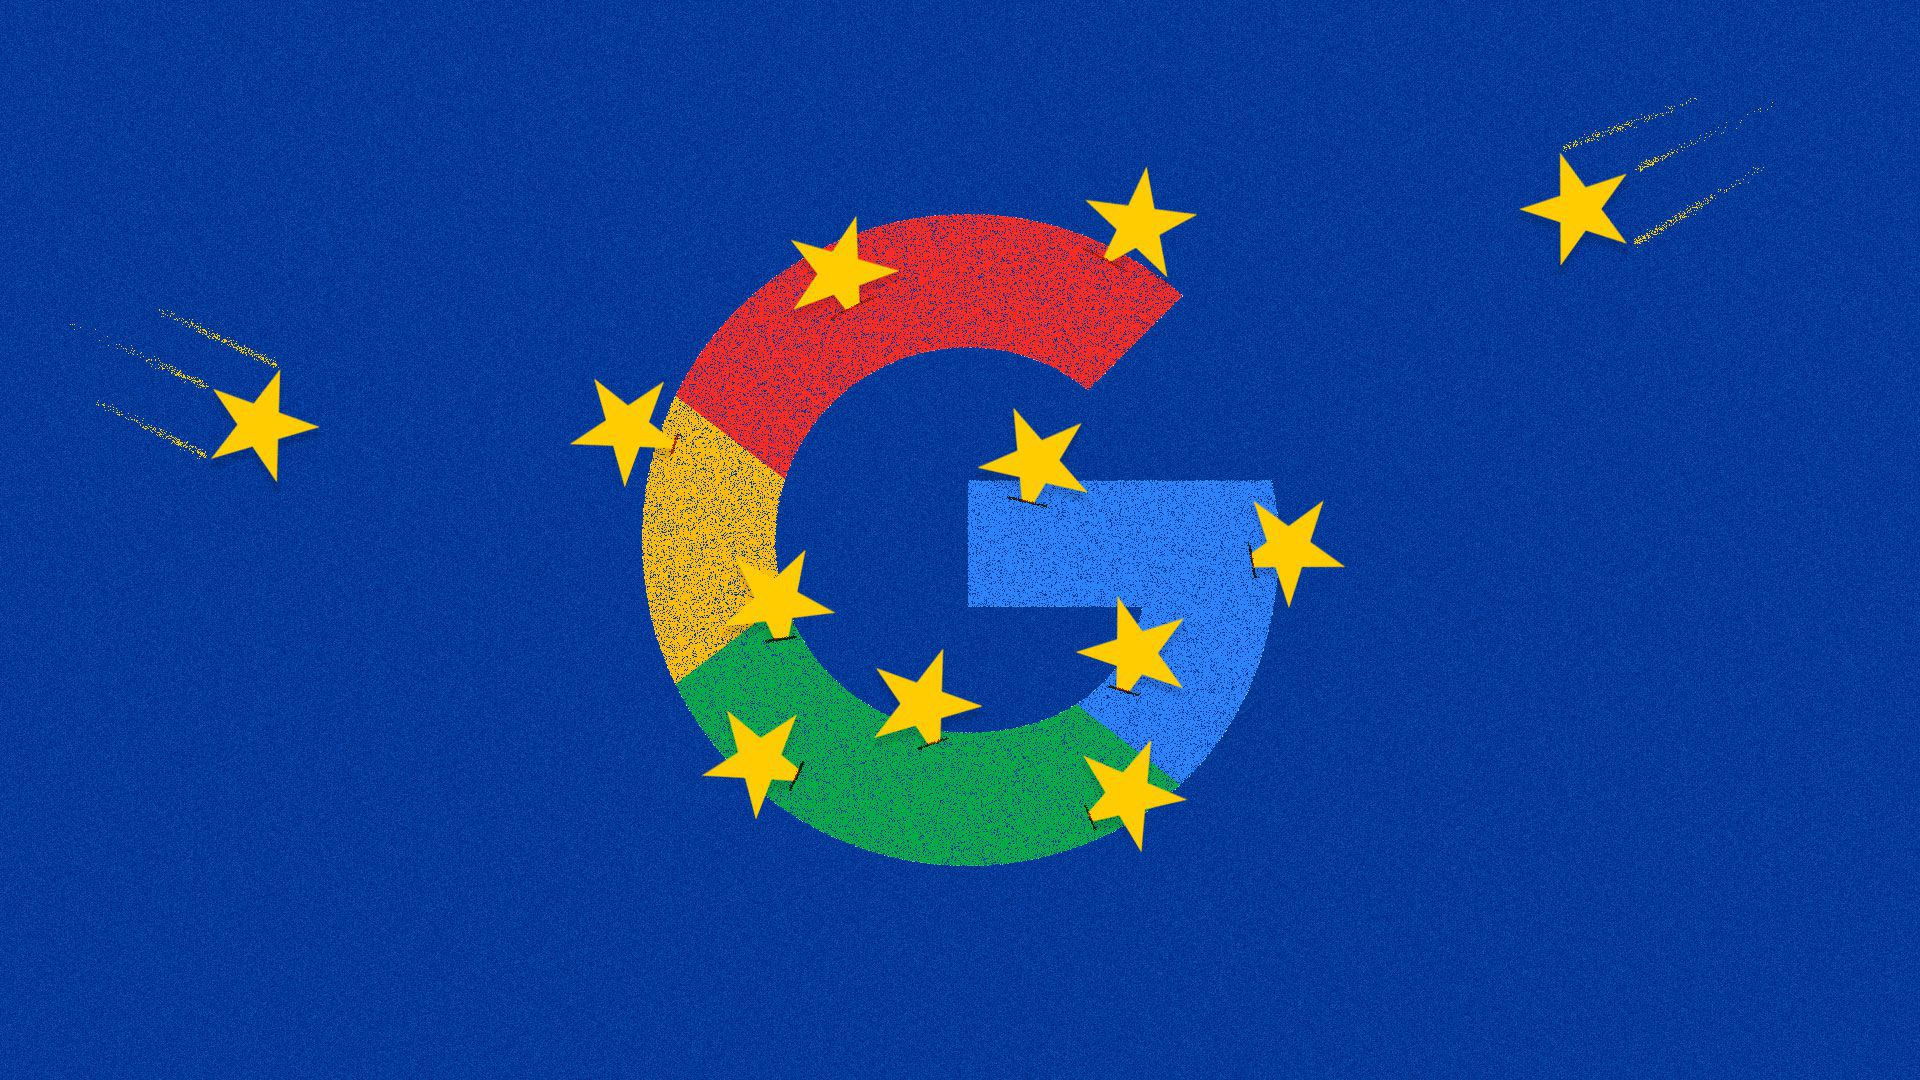 An illustration merging the Google and European Union logos